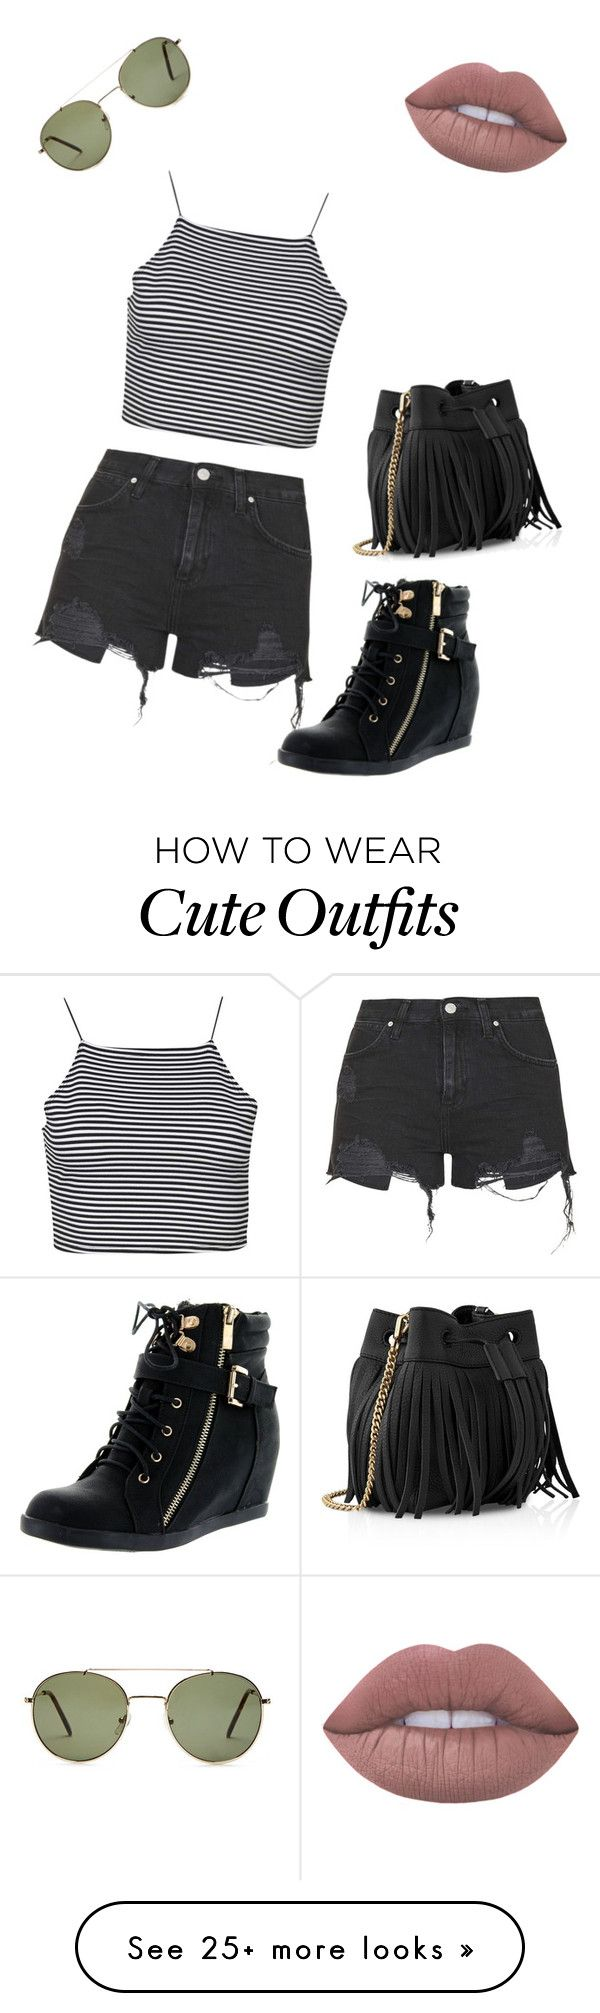 """A cute outfit for SUMMER☀️"" by abarnes2022 on Polyvore featuring Forever 21, Boohoo, Topshop, Top Moda, Lime Crime and Whistles"